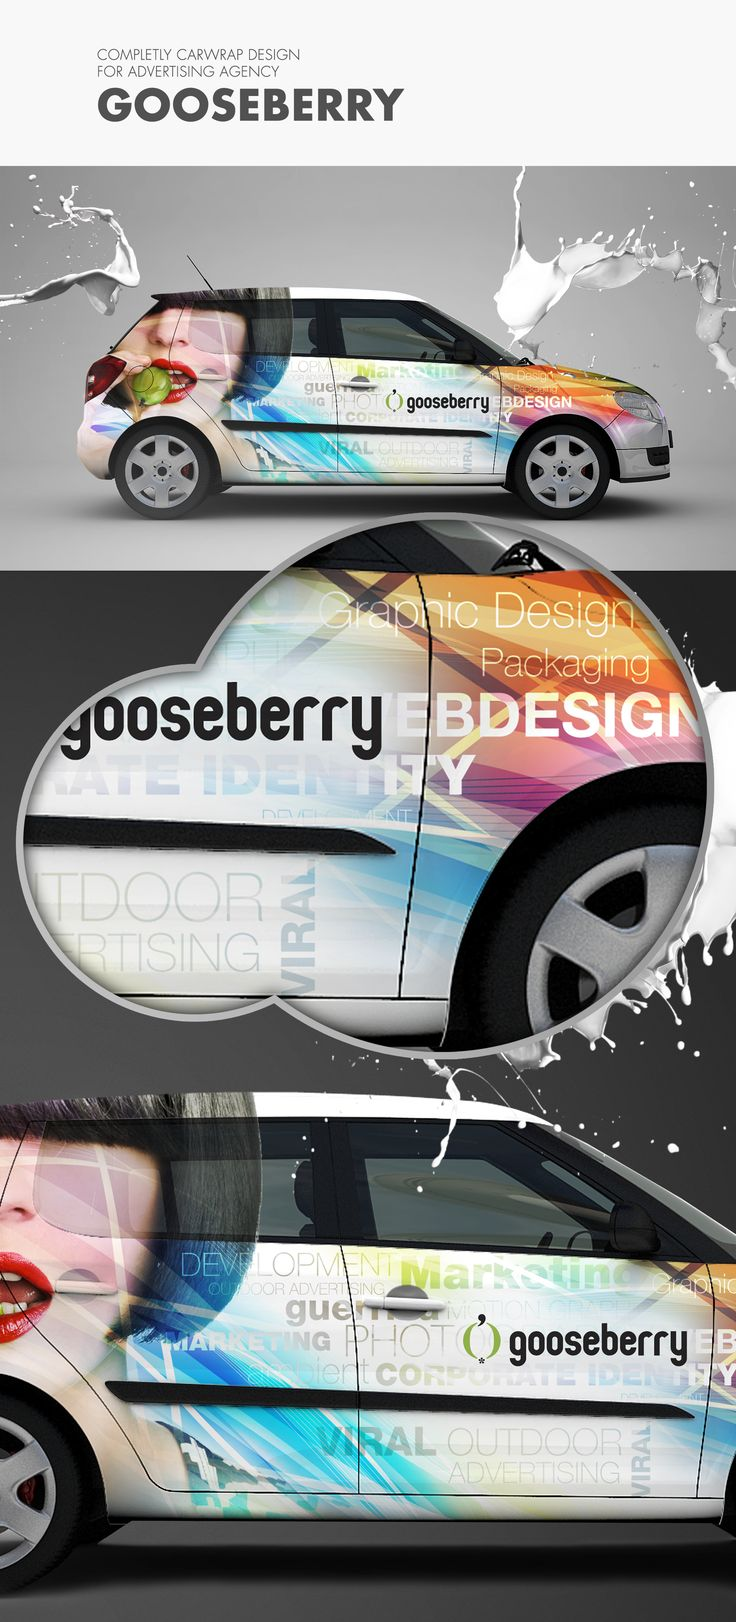 Carwrap design for Gooseberry  #gooseberry #advertising #car #wrap #carwrap #logotype #brand #identity  For complet project visit: https://www.behance.net/bizzonstudio  Coming soon: http://bizzon.sk/